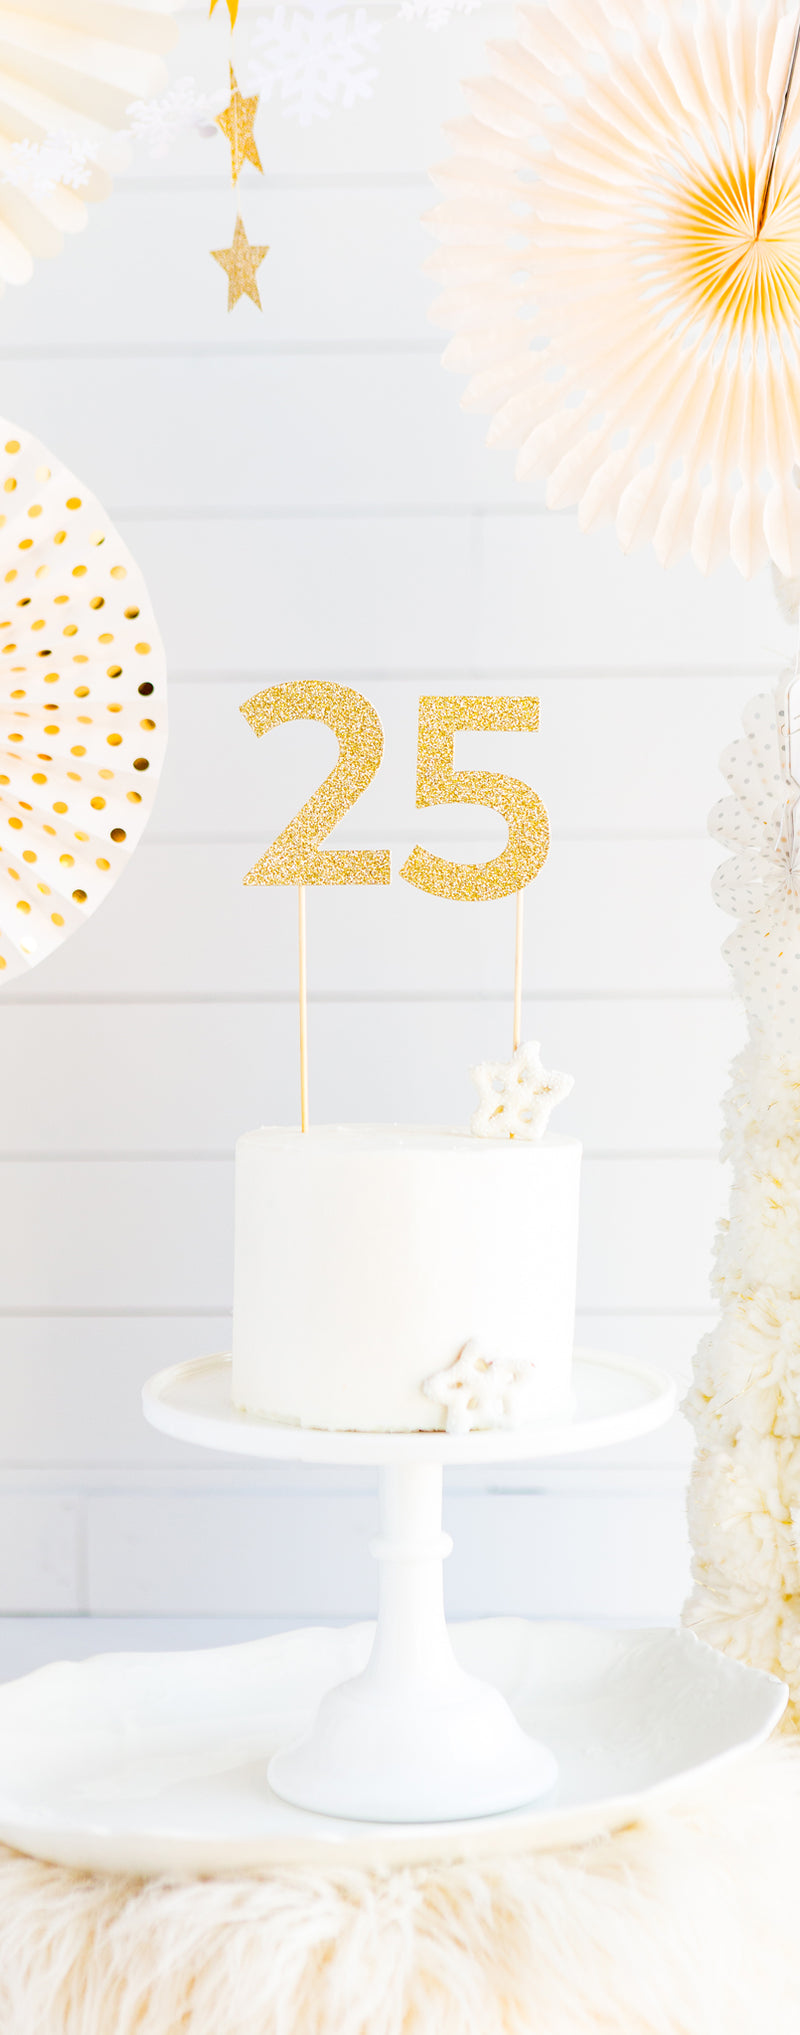 Basic Gold Acrylic Cake Topper - # 9